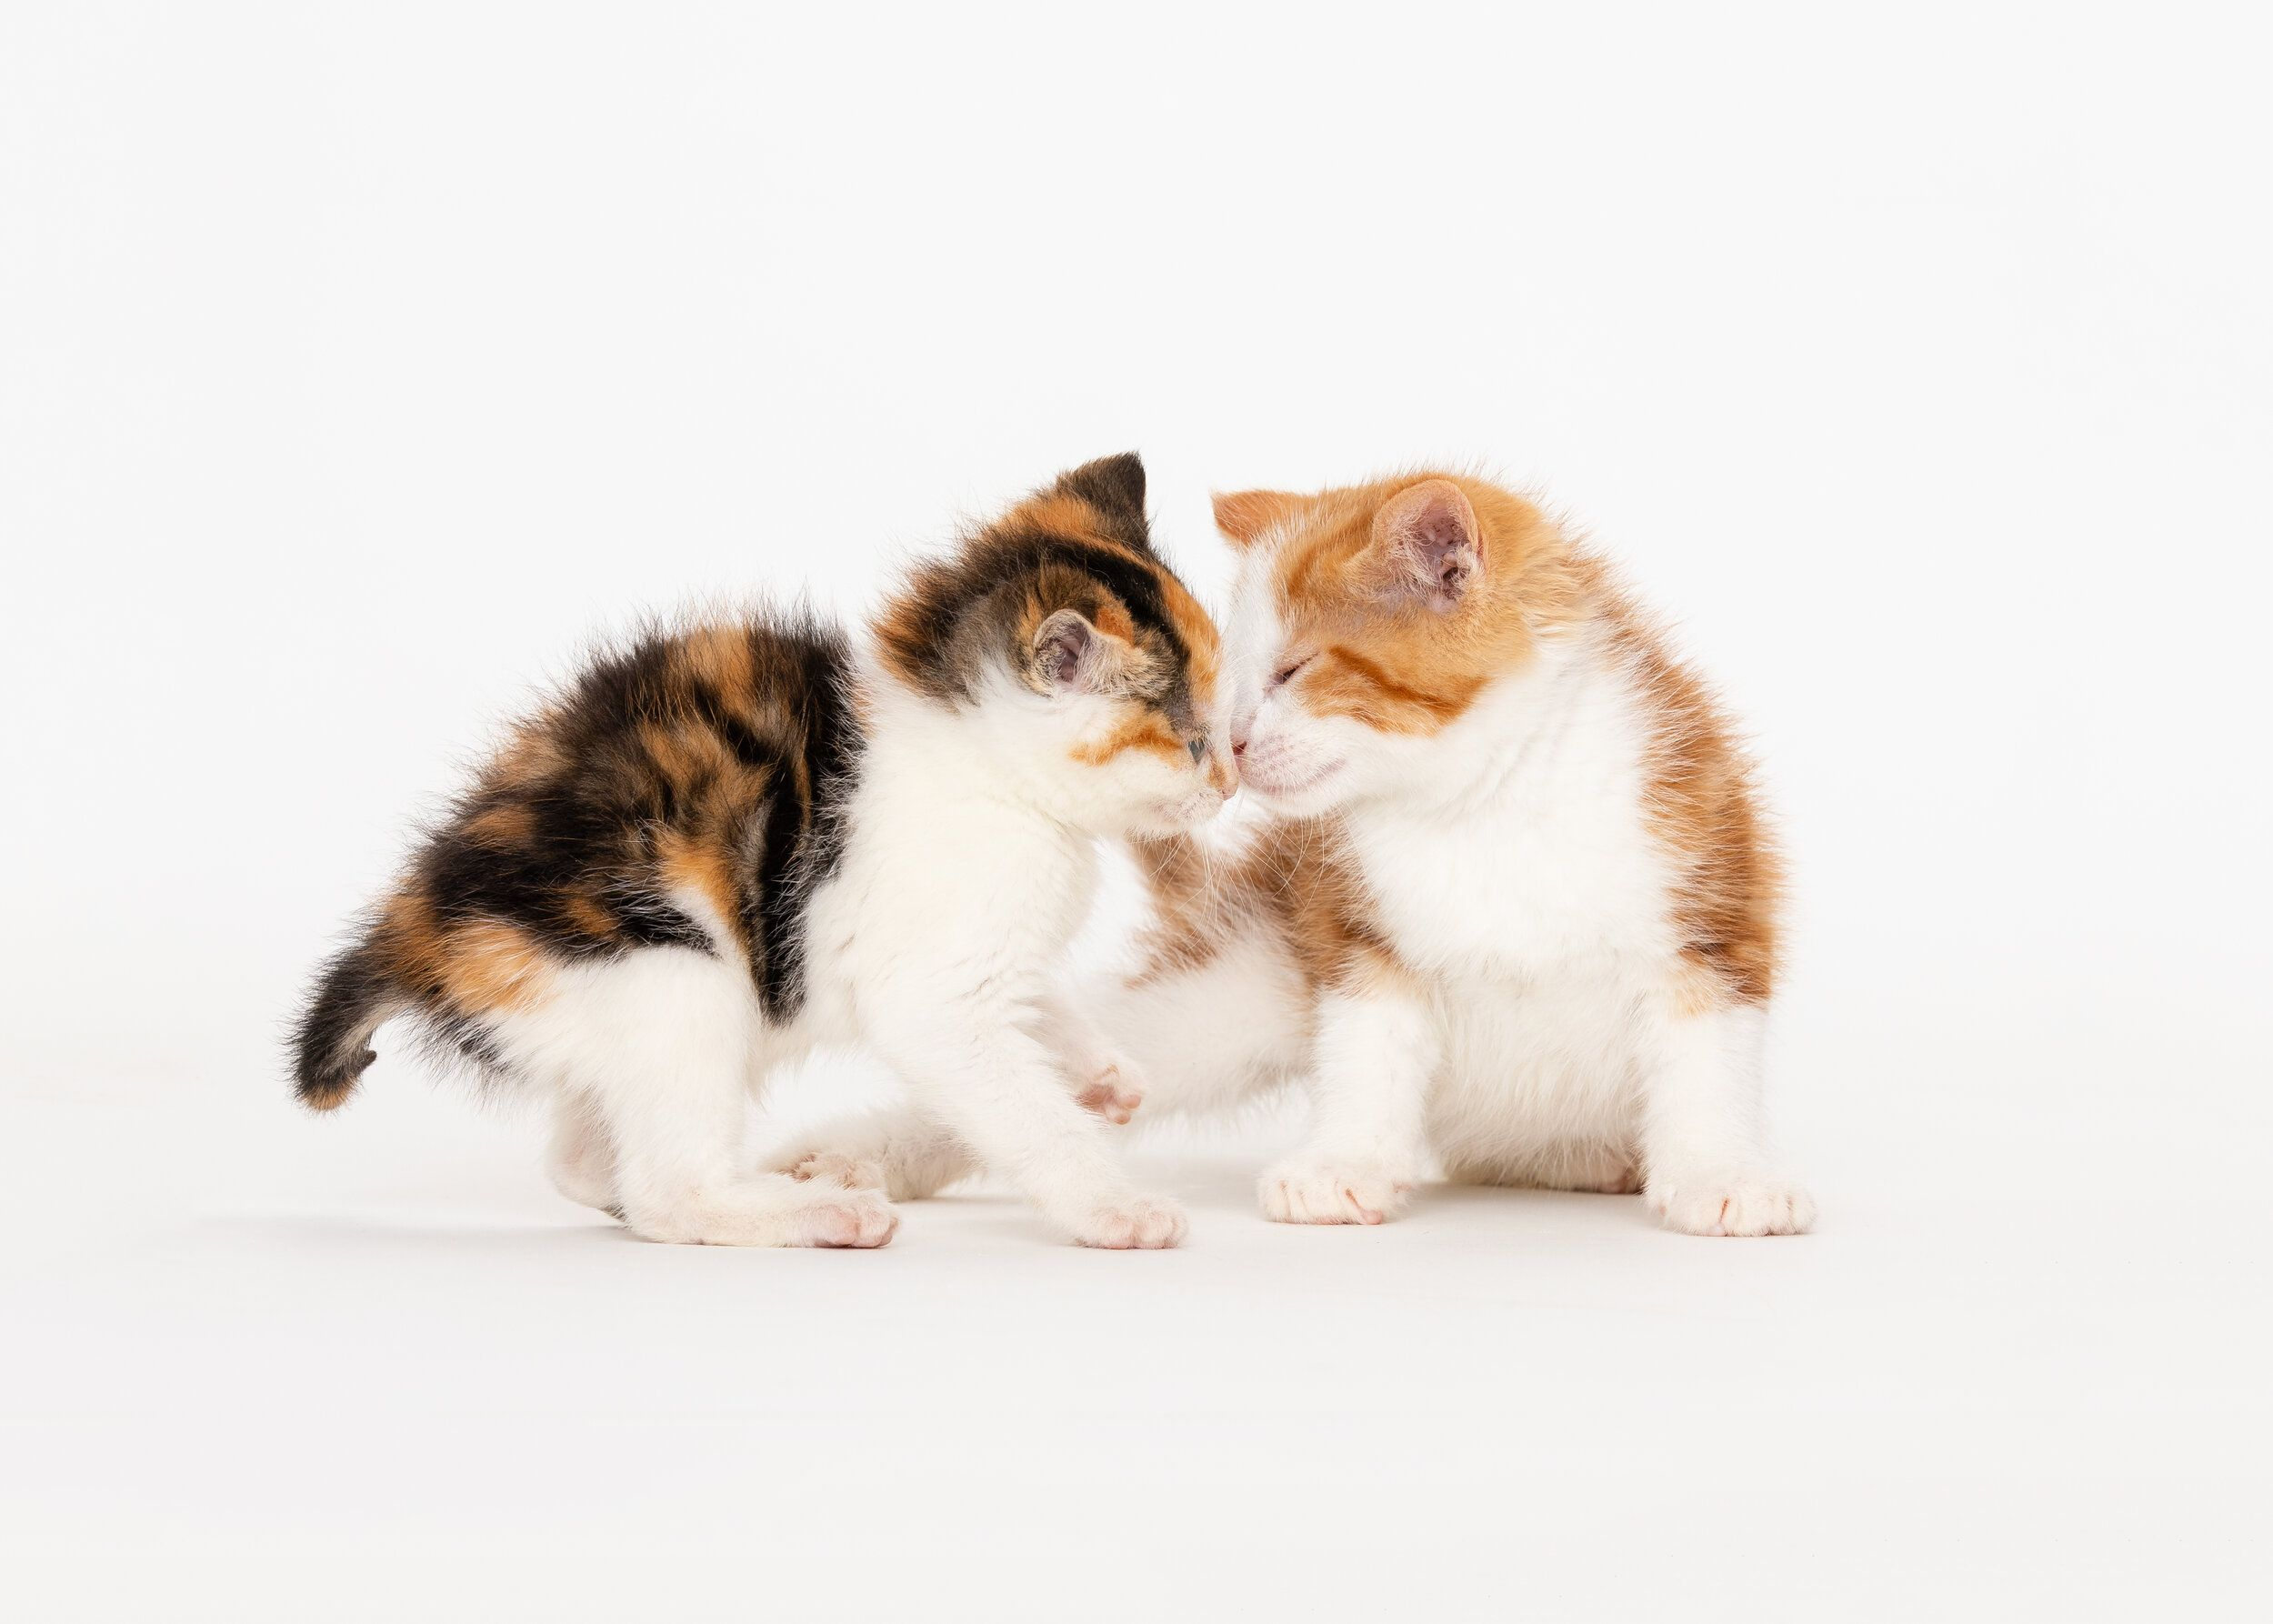 Daily Dose June 7 2020 Kitten Kiss Joan And Rollie 2020 C Barbara O Brien Photography All Rights Reserved Or In 2020 Animal Photography Animals Images Kitten